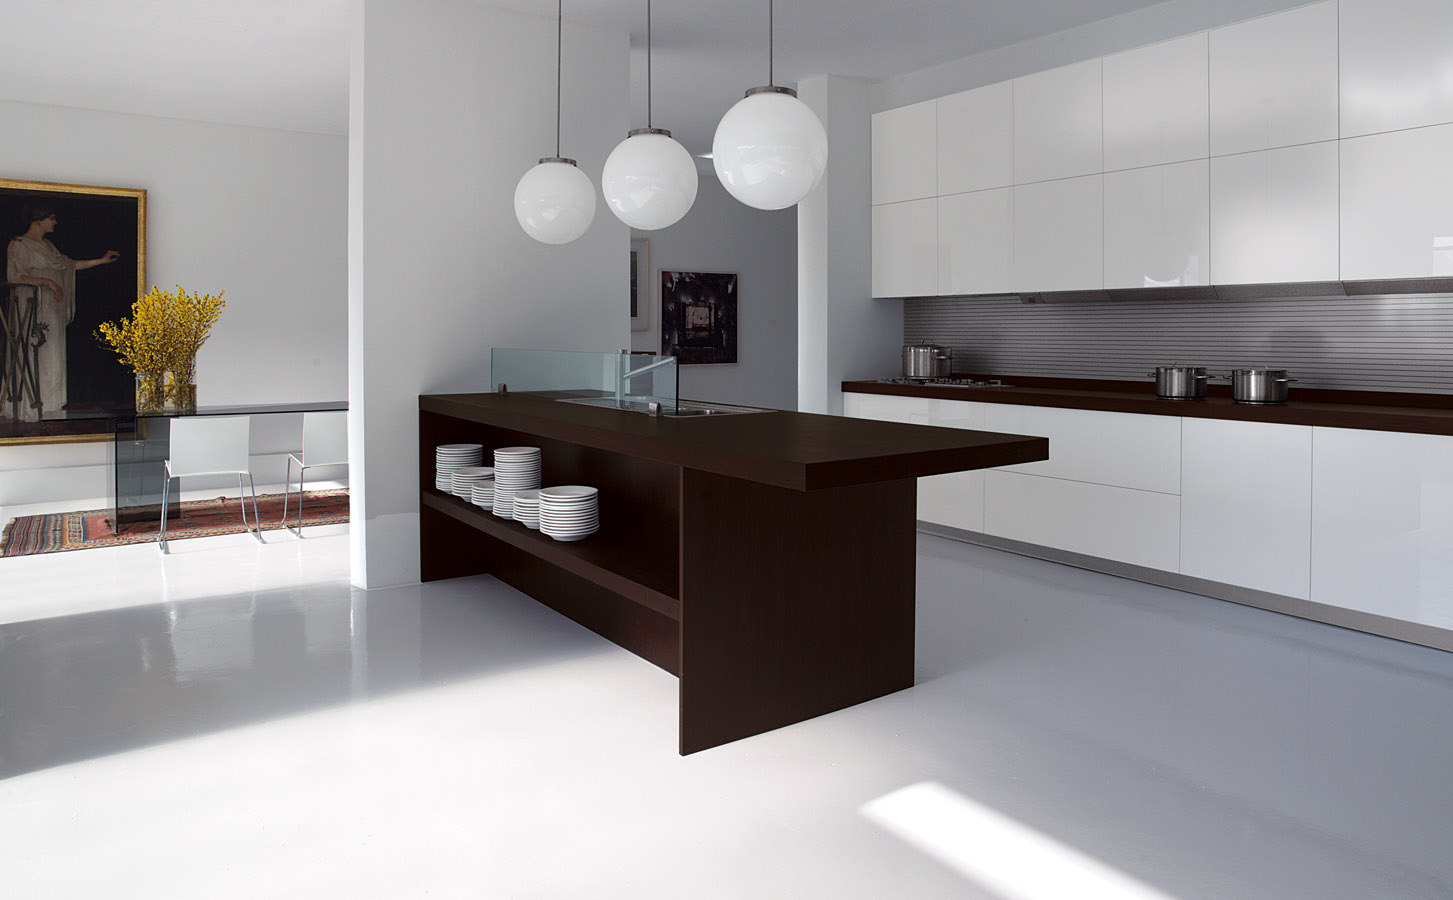 Simple contemporary kitchen interior design one for Kitchen interior designs pictures